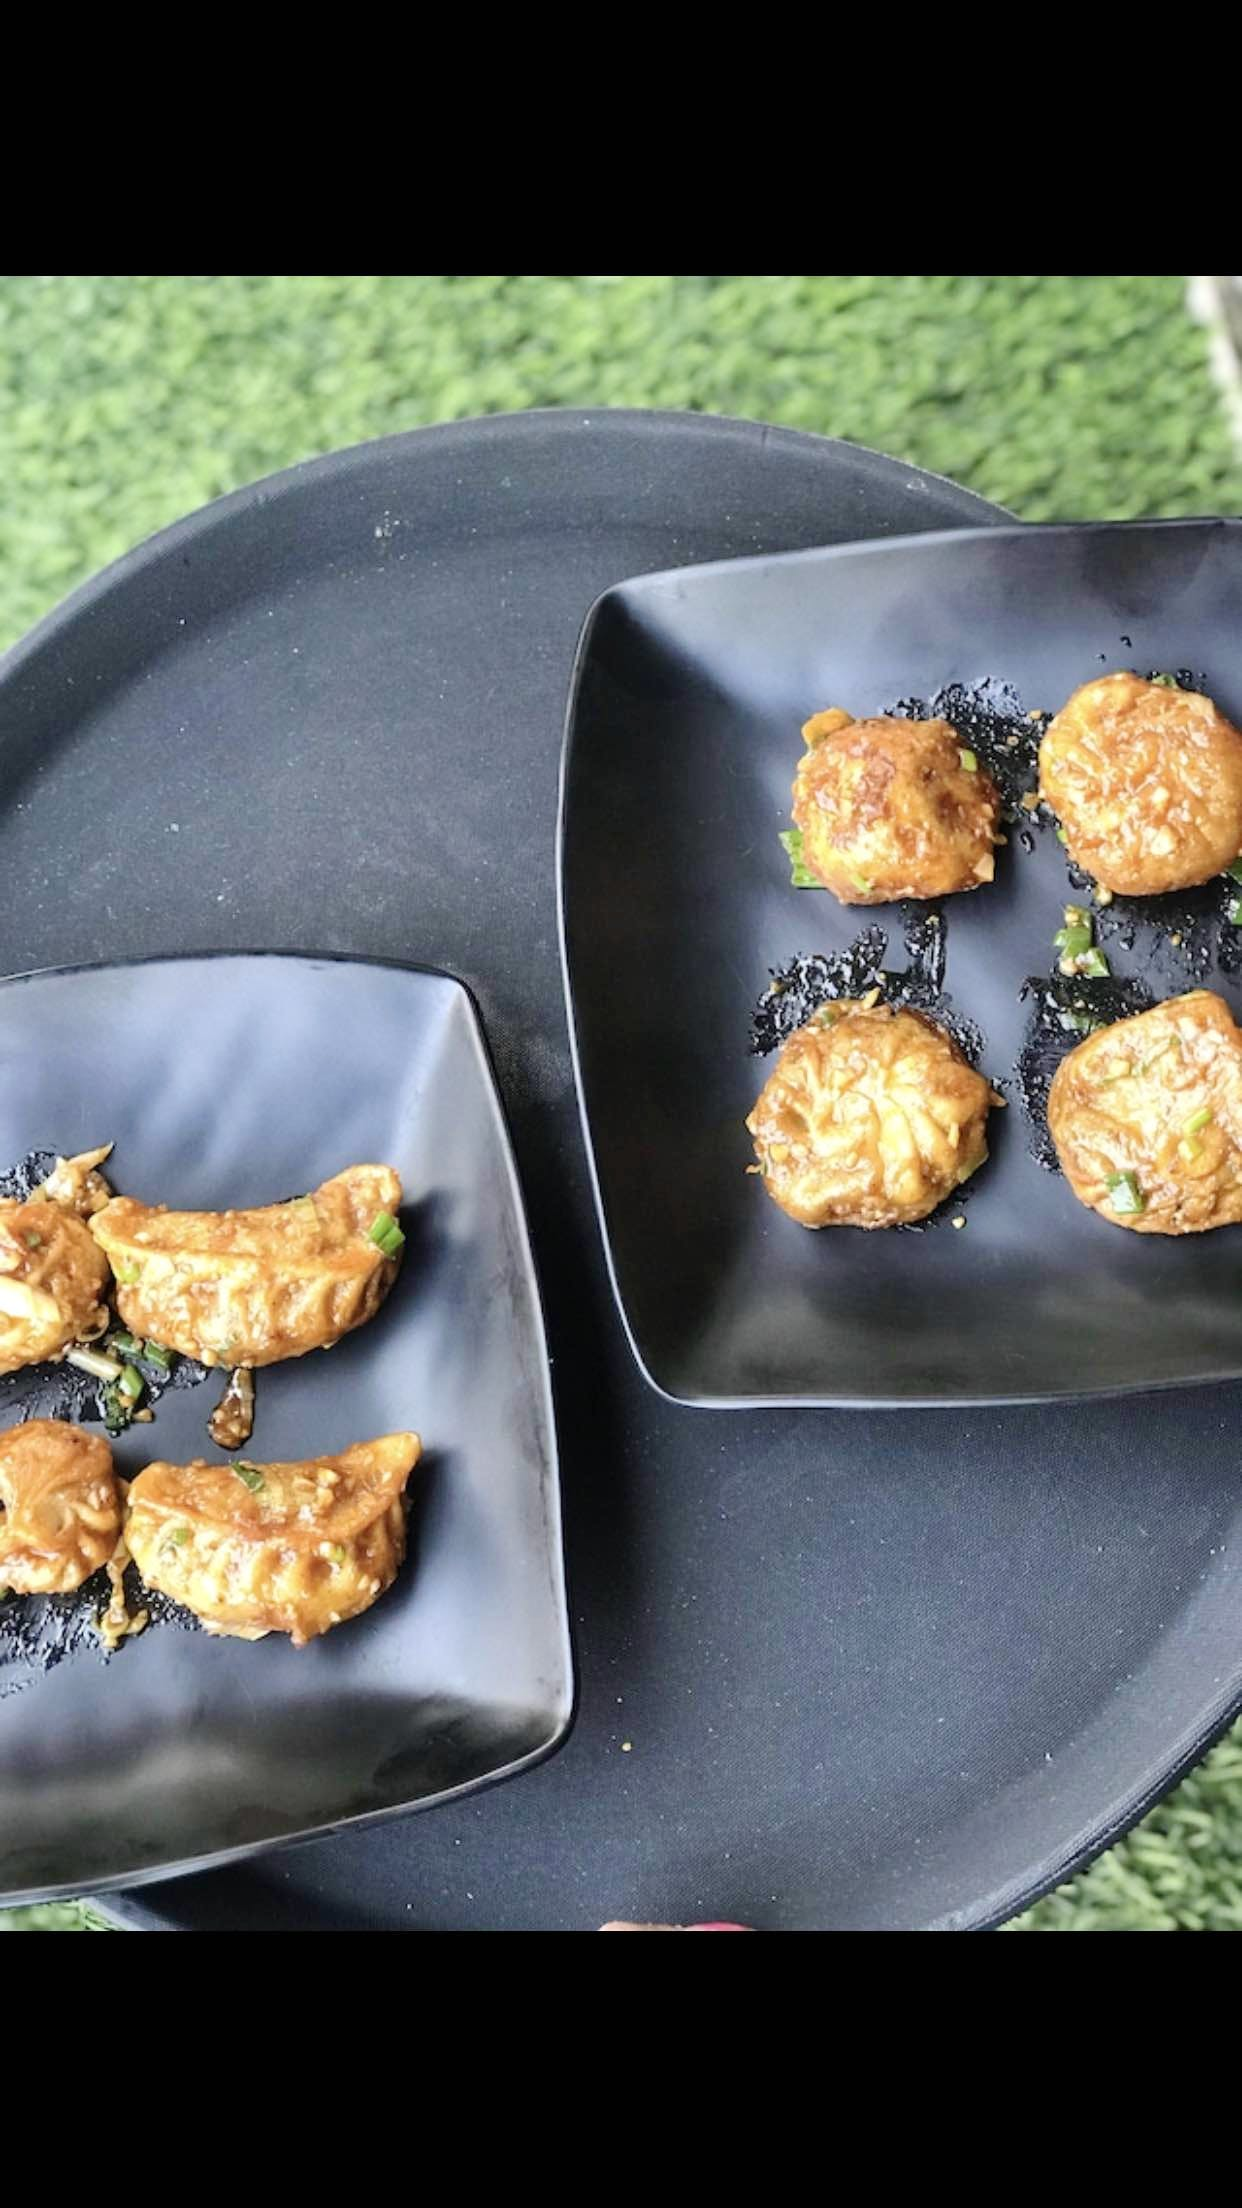 Dish,Food,Cuisine,Ingredient,Fried food,Fritter,Produce,Recipe,Finger food,Baked goods